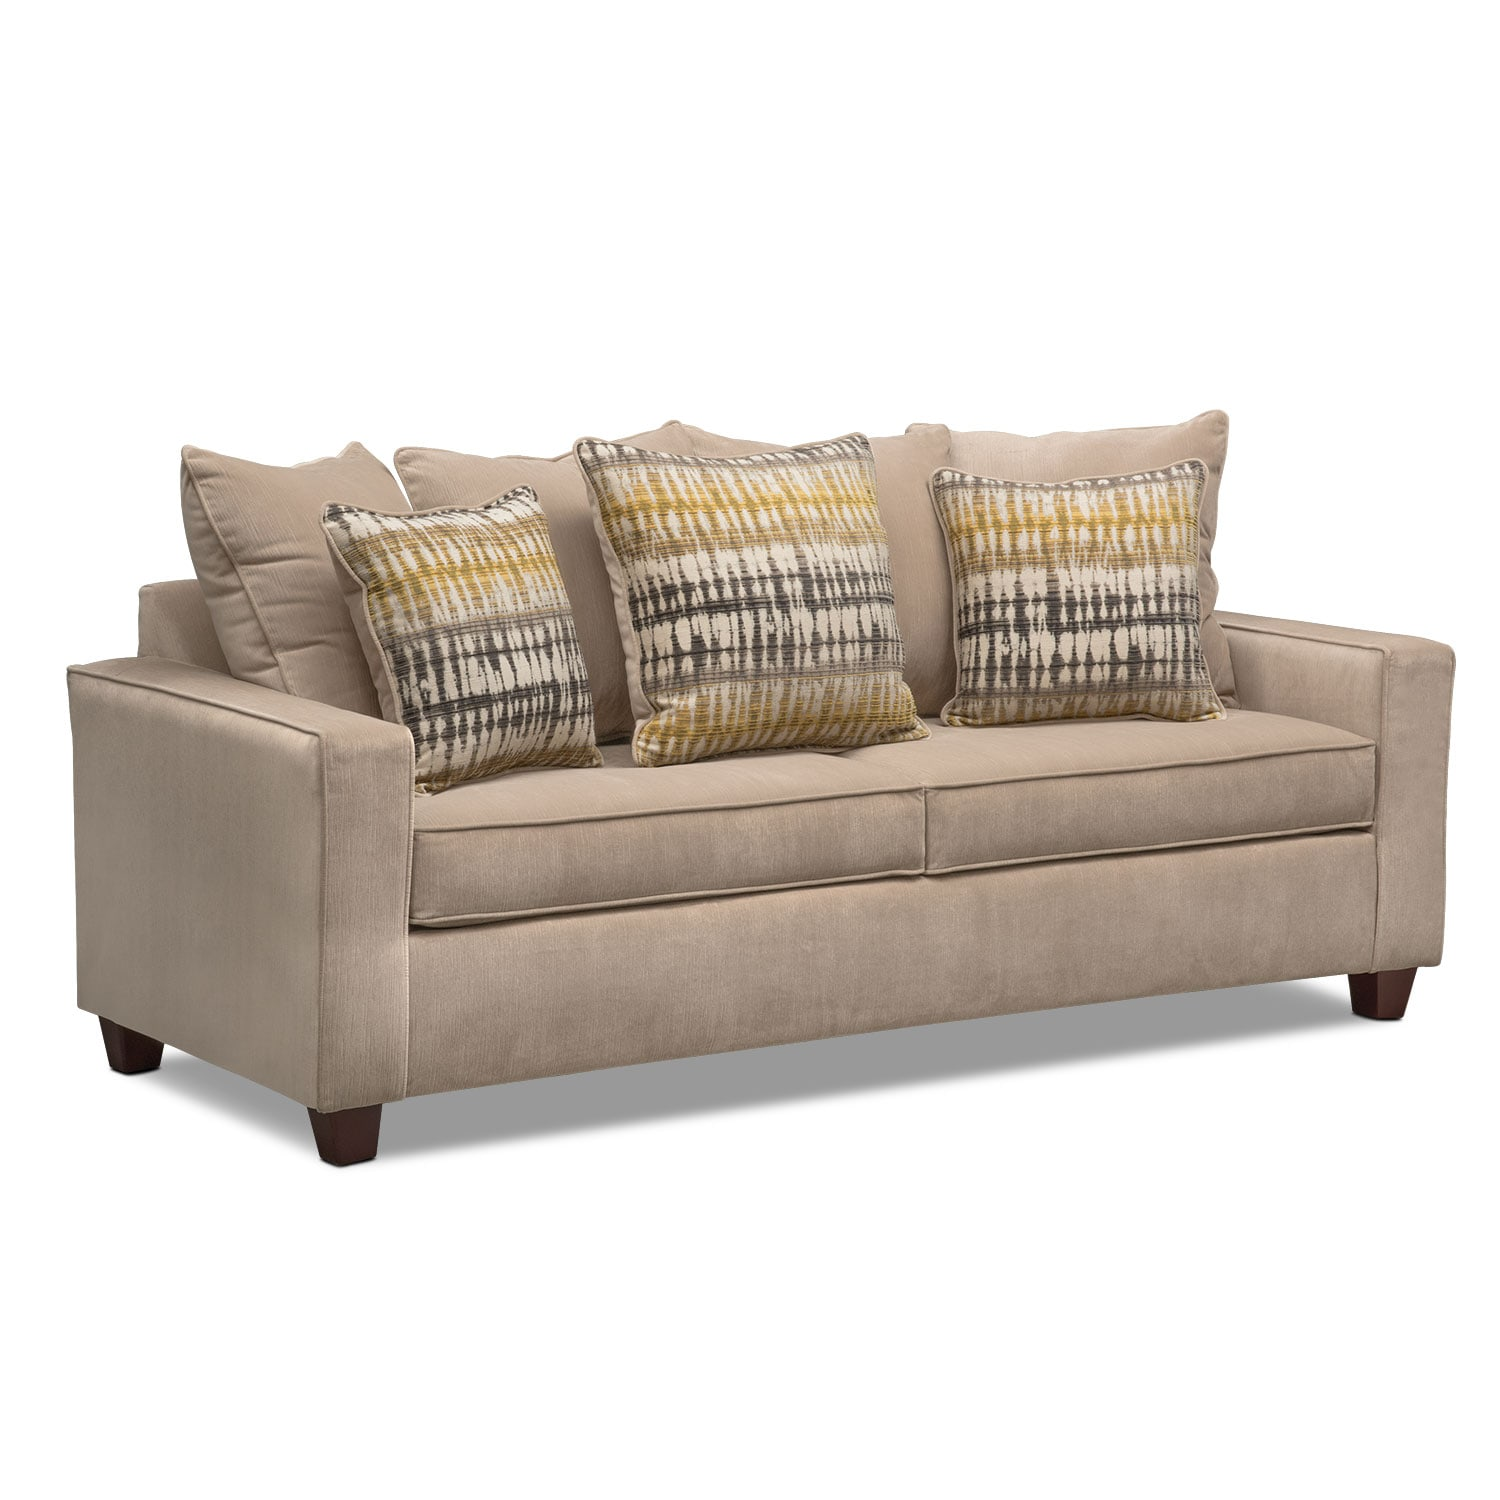 Bryden sofa beige american signature furniture for American signature couch